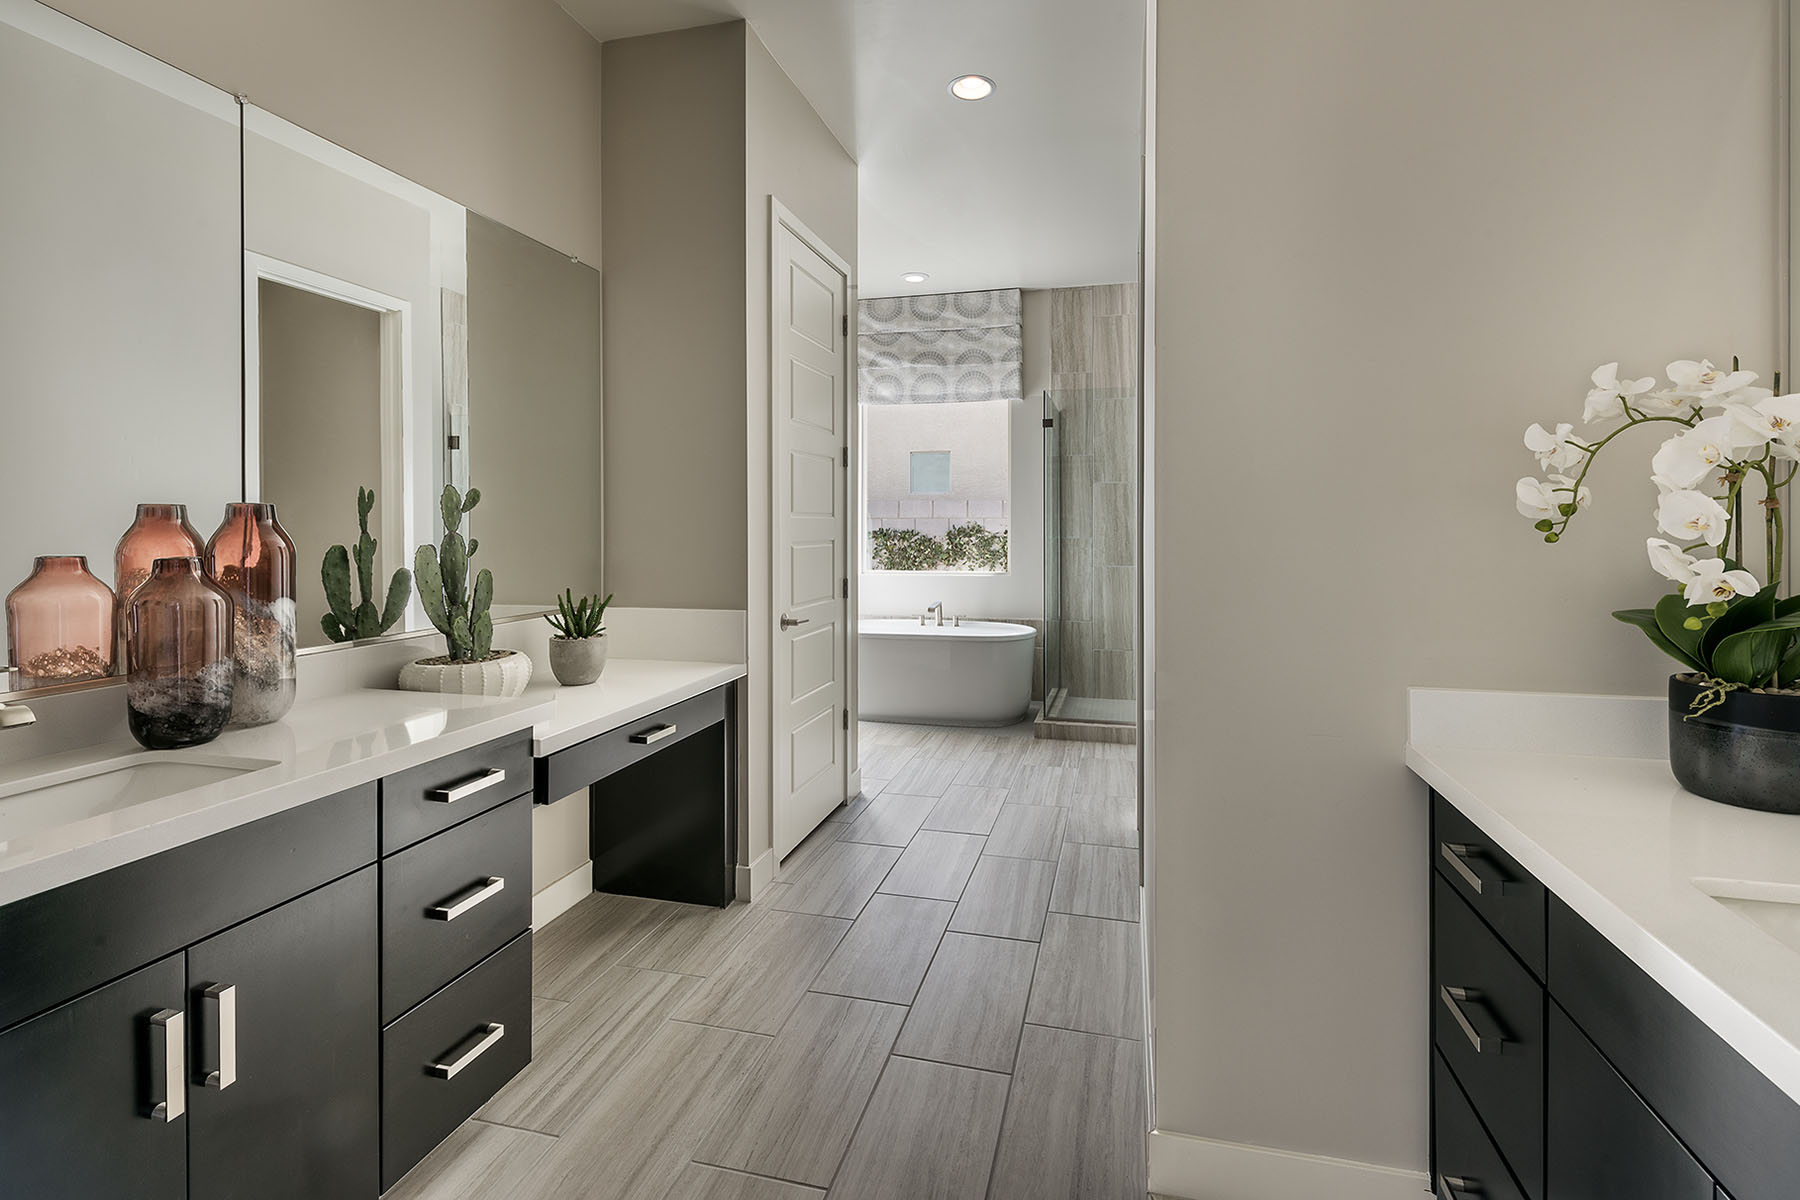 Brookstone Plan Bathroom_Master Bath at Azure Canyon in Litchfield Park Arizona by Mattamy Homes